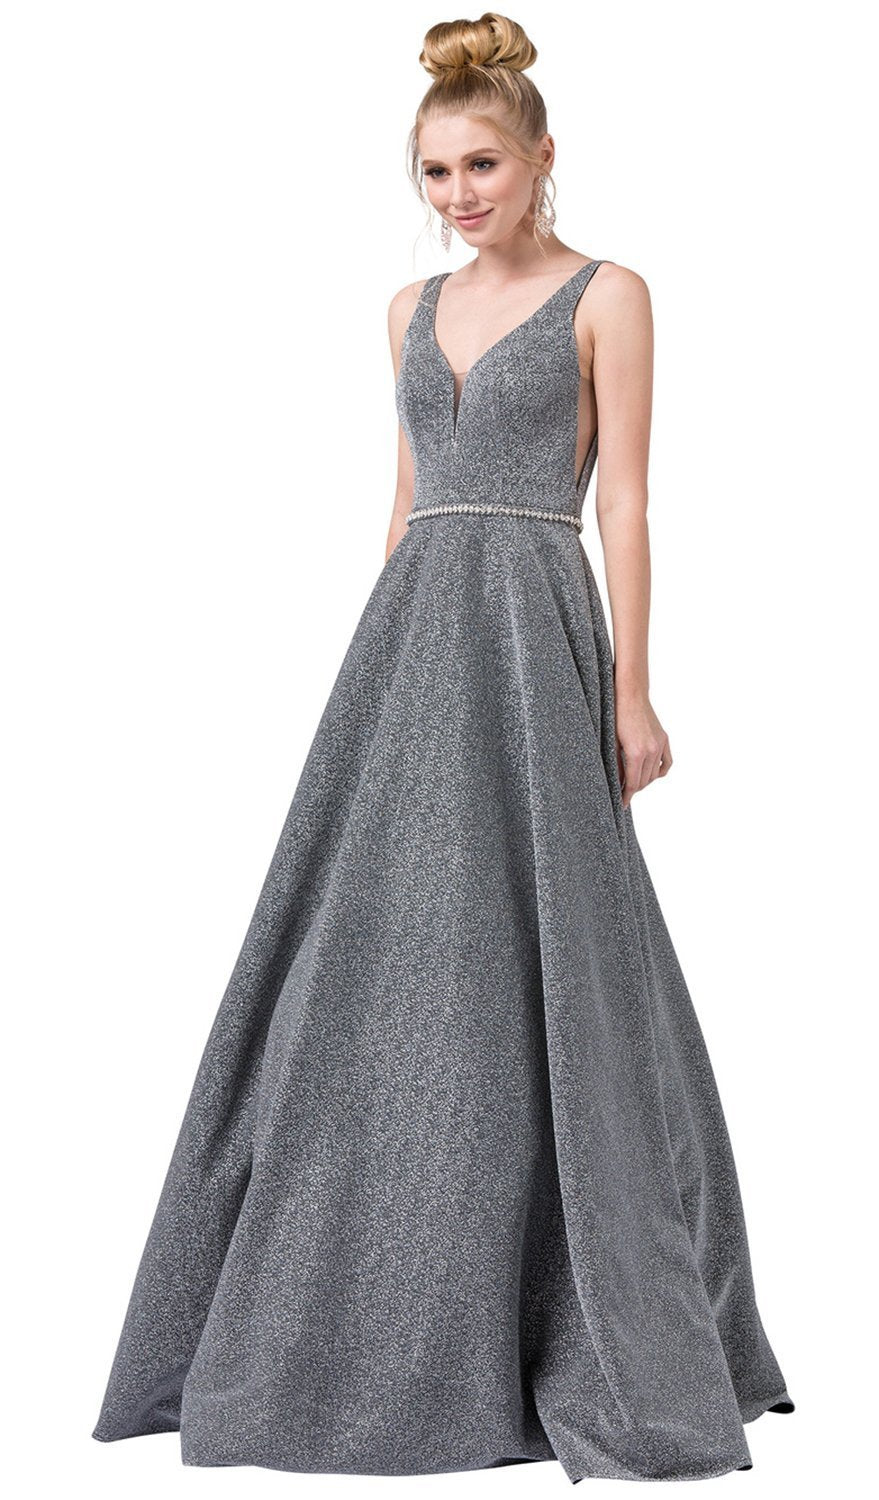 Dancing Queen - 2706 Deep V-neck A-line Metallic Gown In Silver